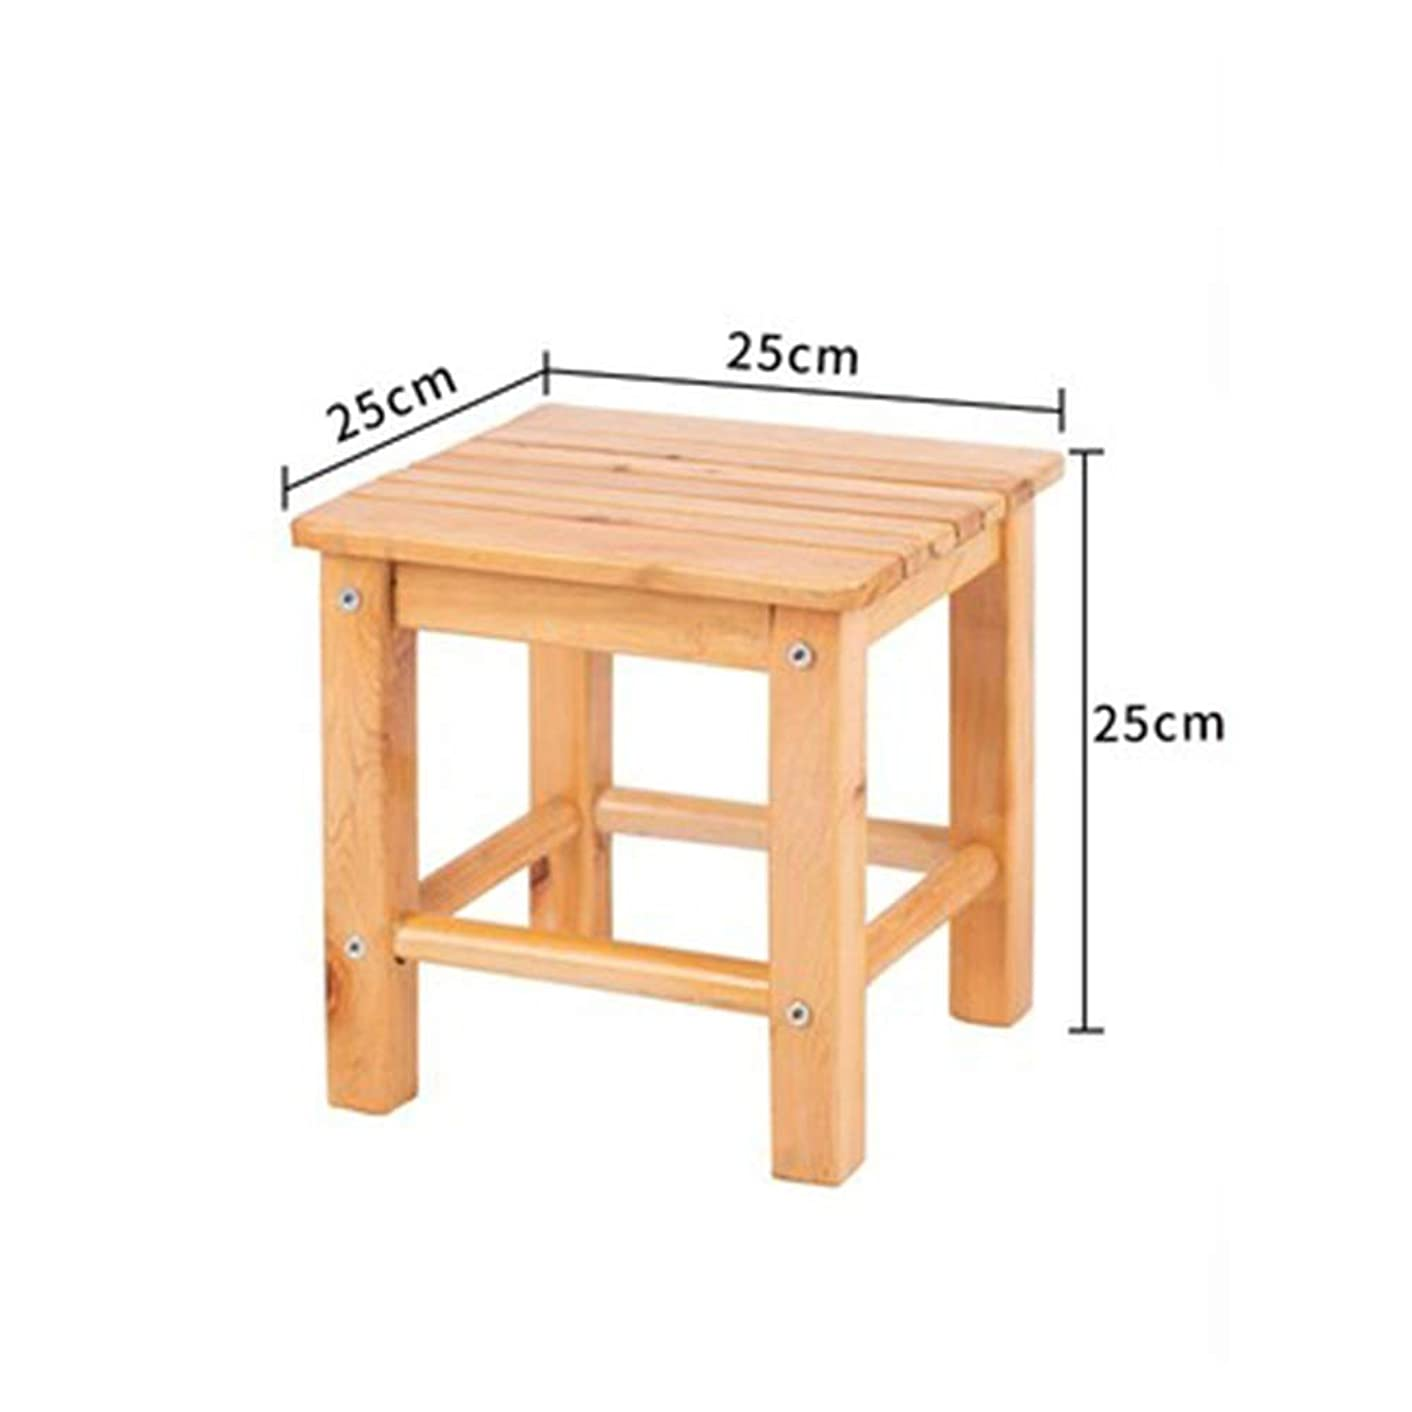 WPQW Wooden Bench- Solid Wood Stool Creative Small Bench Children's Stool Fashion Low Stool Square Stool Wooden Stool - Wood Stool 2506 (Color : C)